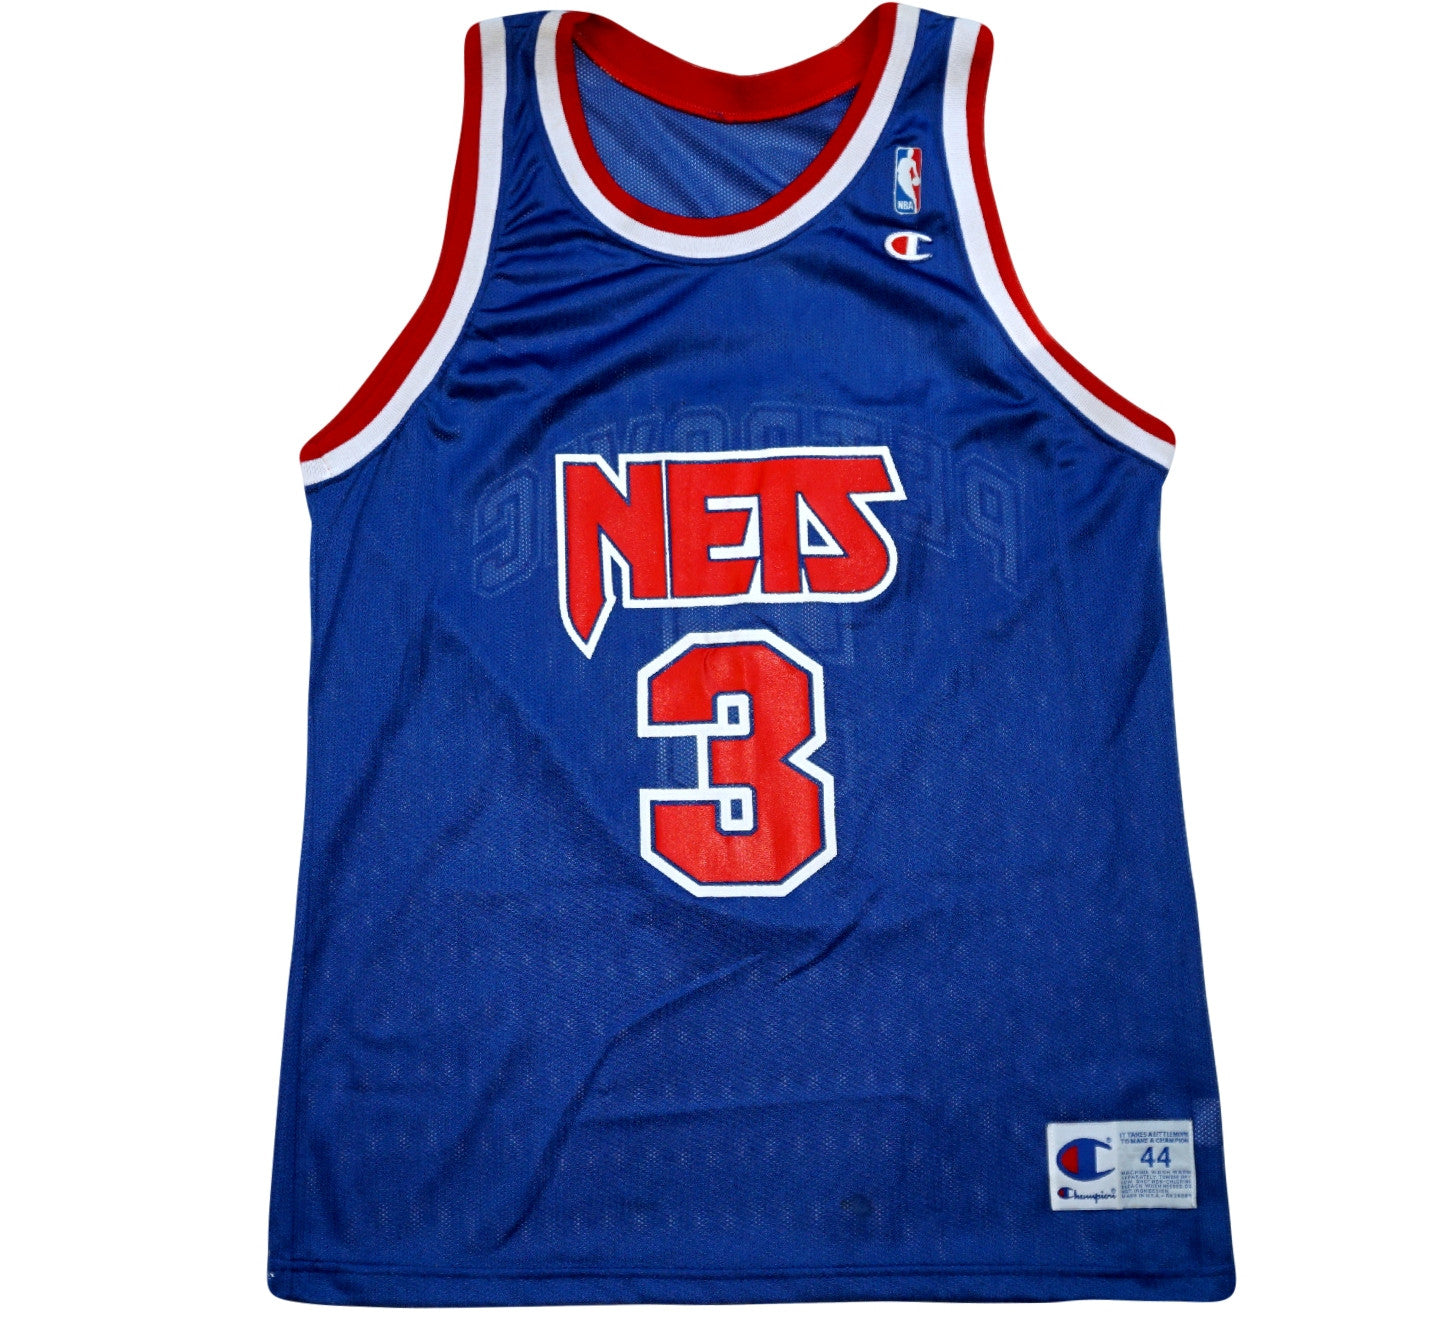 Drazen Petrovic Nets Jersey - And Still